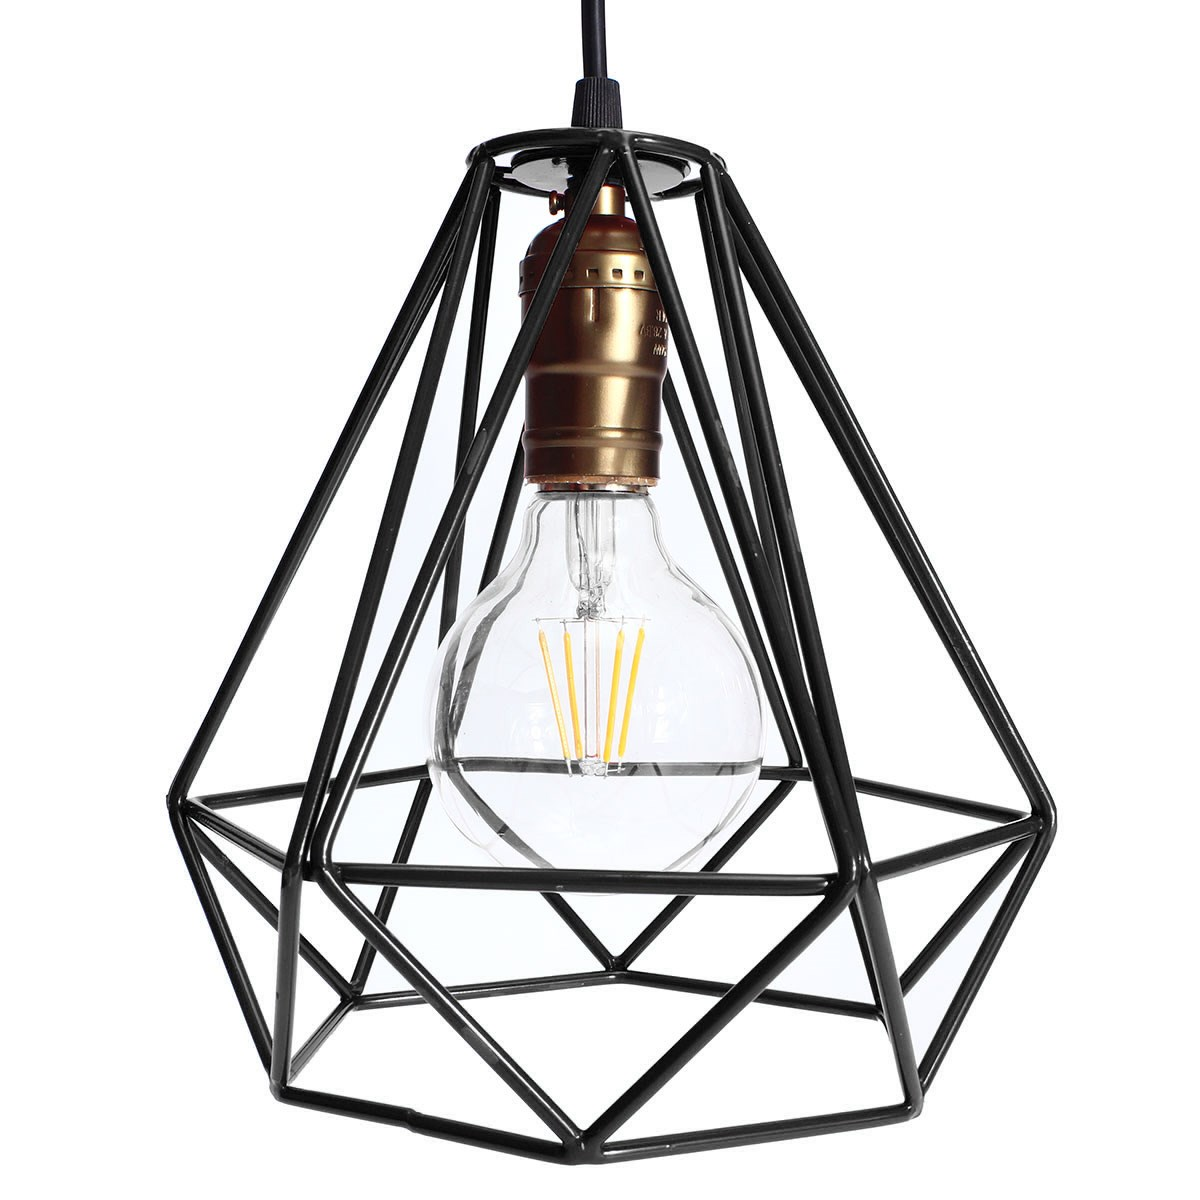 Lampshade modern lamp cover loft industrial edison metal wire frame lampshade modern lamp cover loft industrial edison metal wire frame ceiling pendant hanging light lamp cage fixture in lamp covers shades from lights greentooth Choice Image